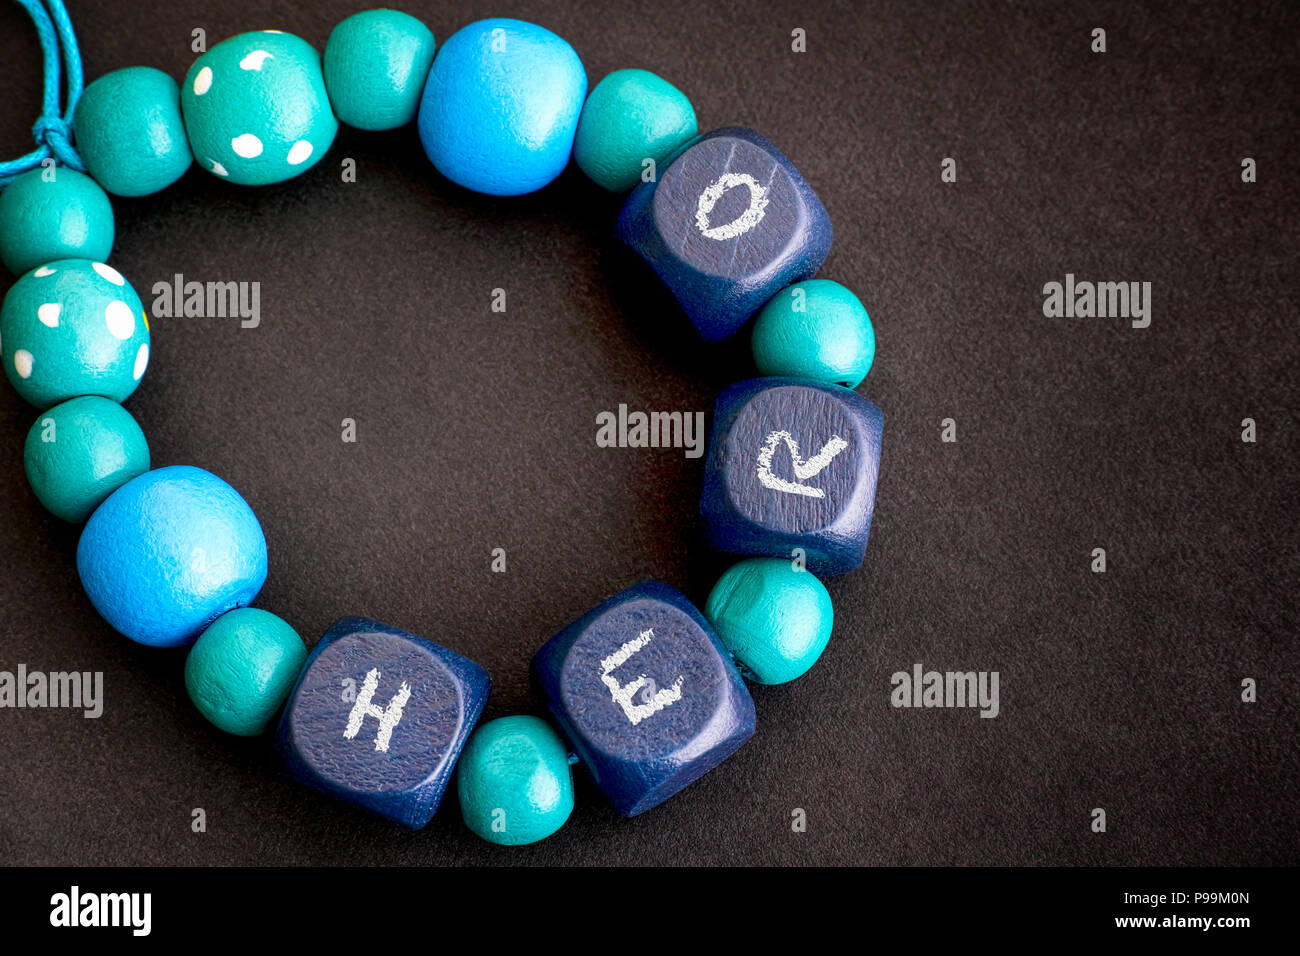 Bracelet of blue wooden beads with word HERO on black background. Close-up. - Stock Image